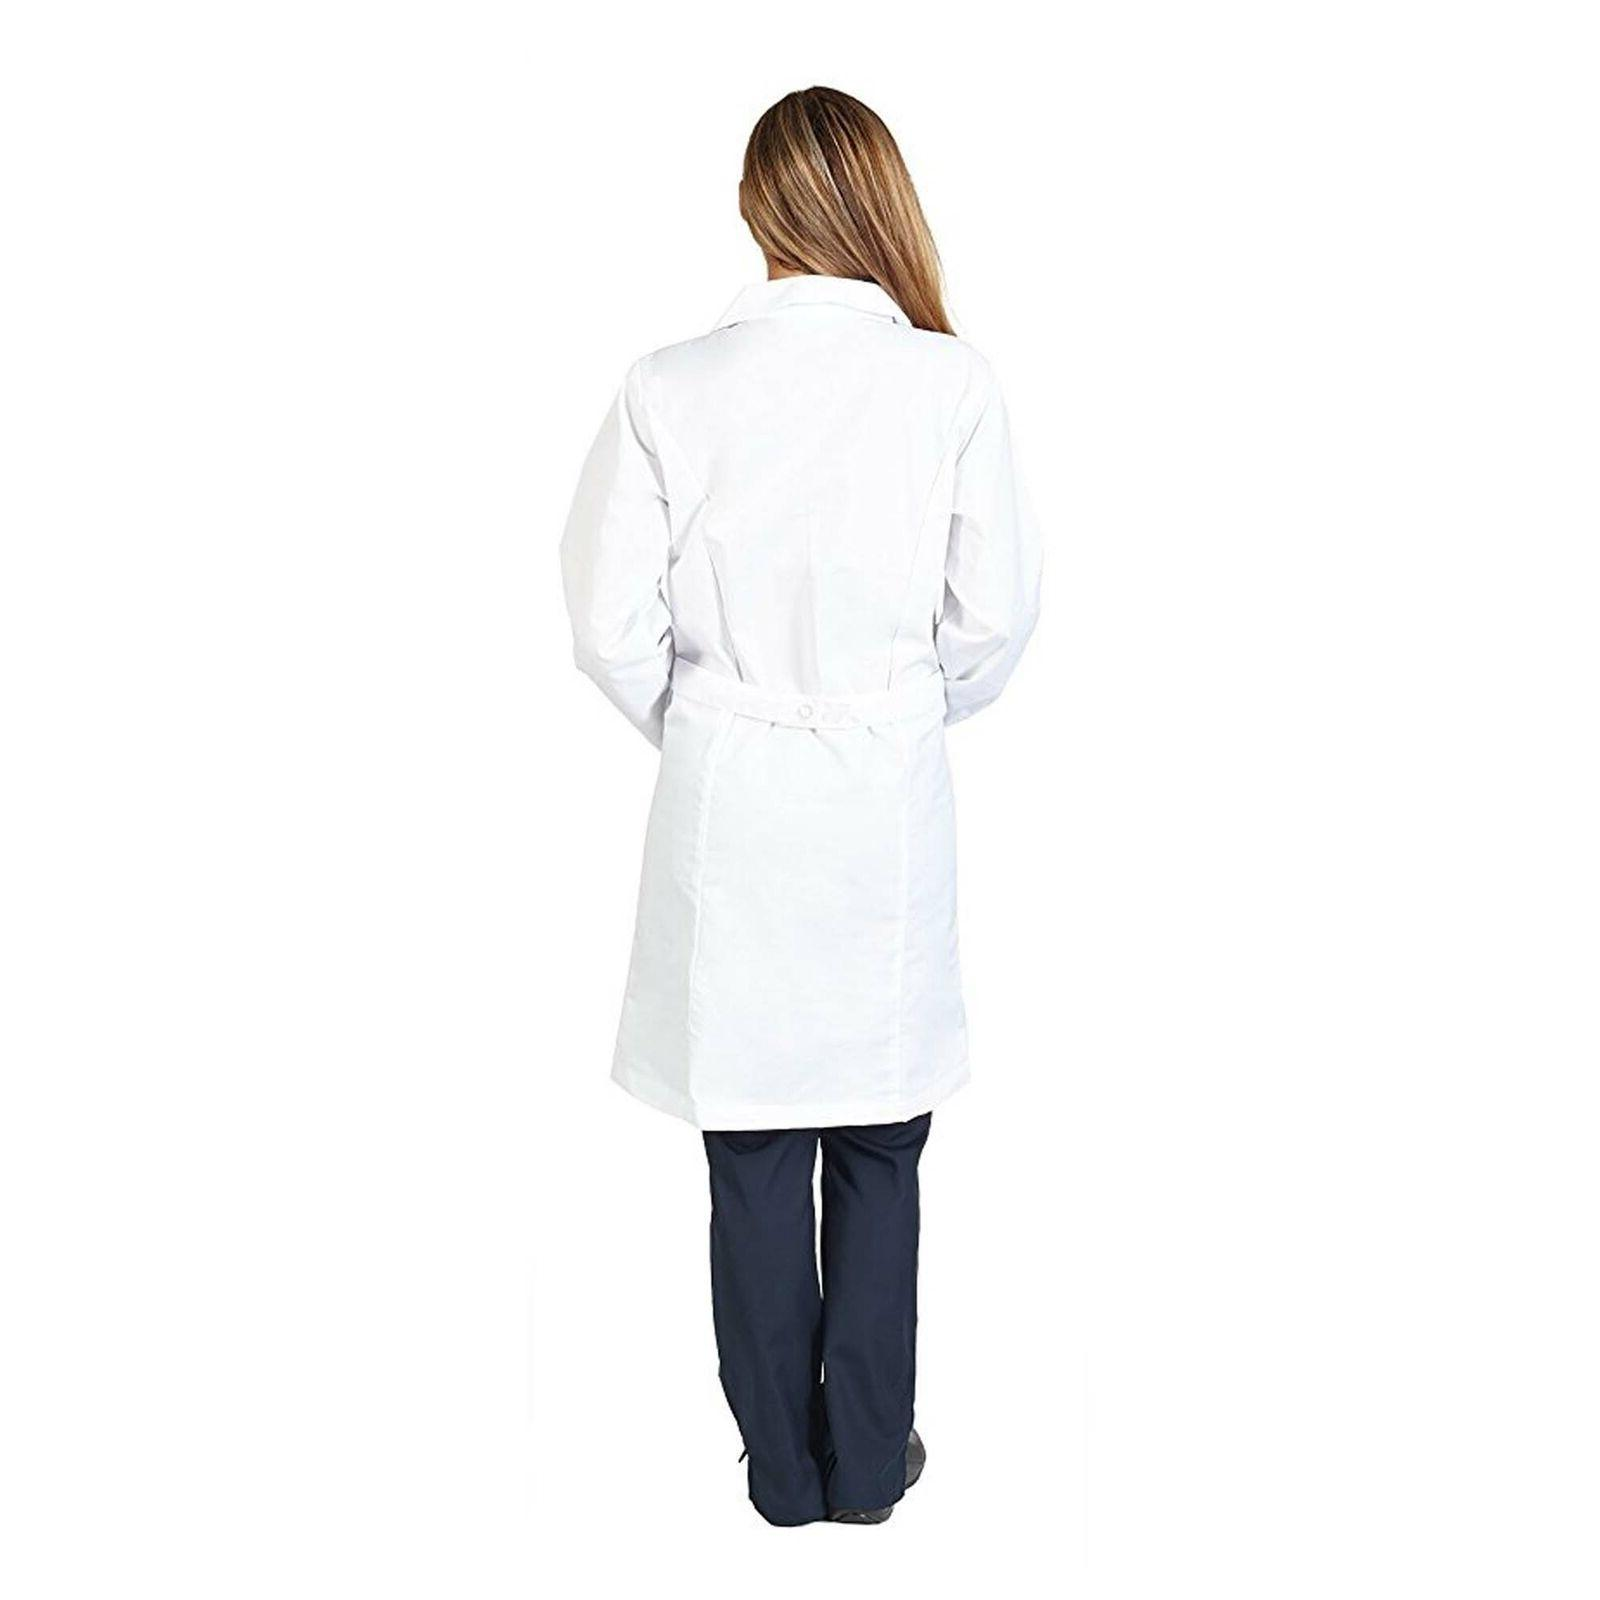 NATURAL UNIFORMS WOMENS LENGTH INCH